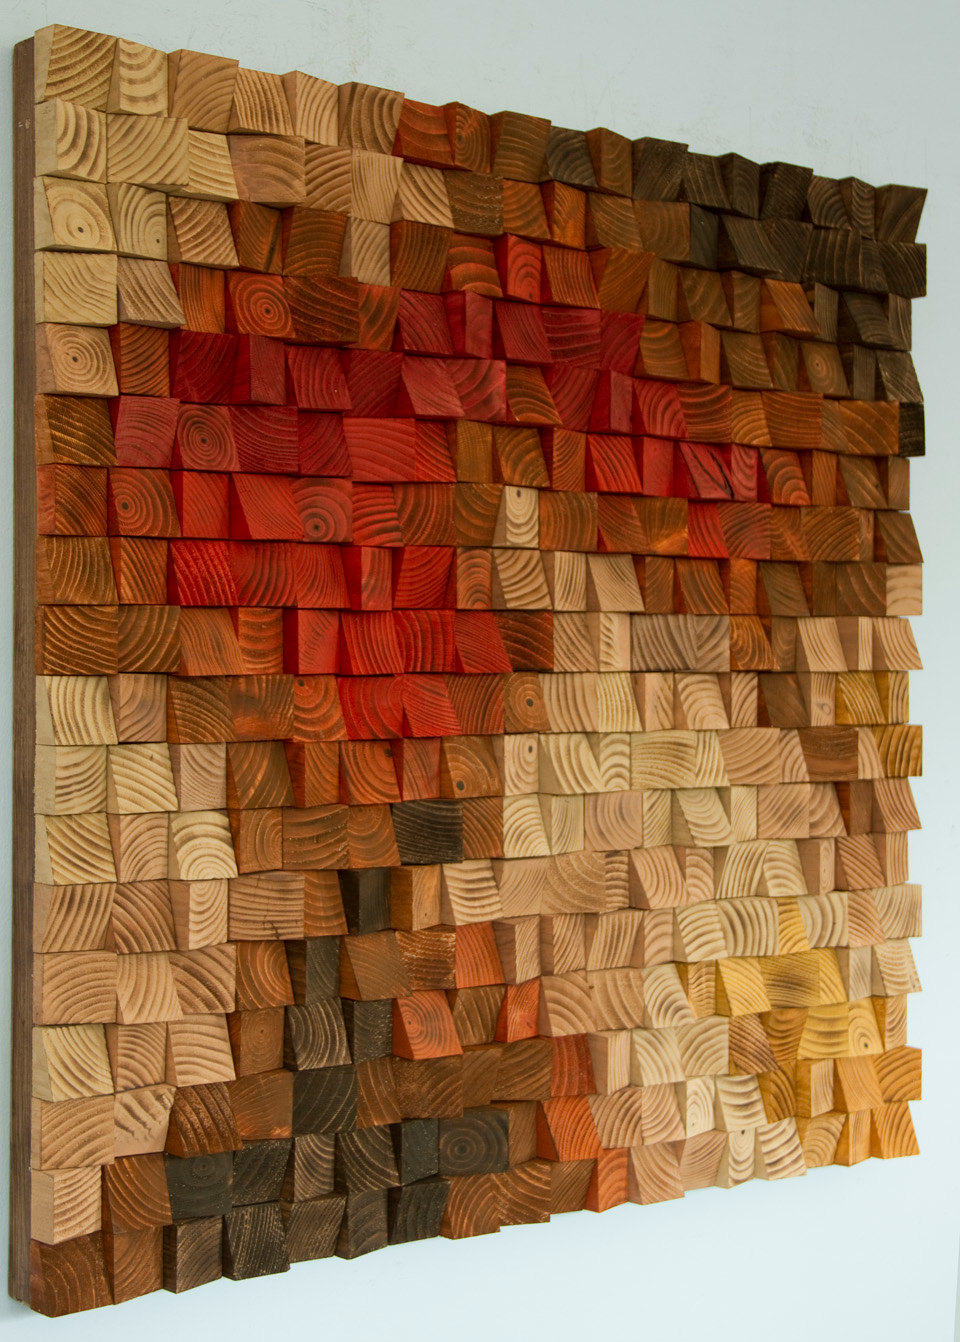 Large rustic wood wall art wood wall sculpture abstract - Pintura rustica en paredes ...